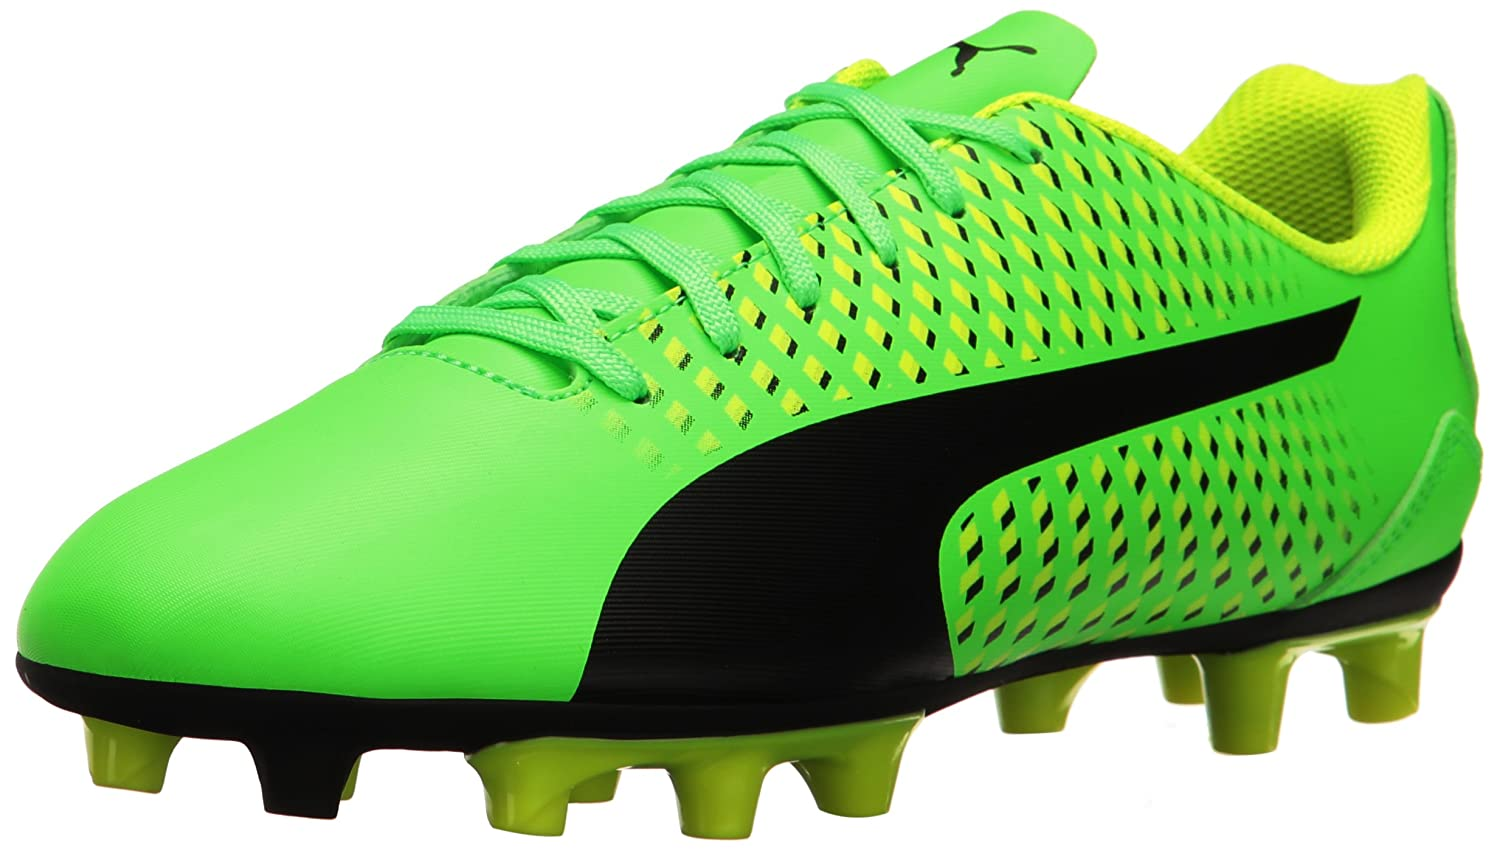 PUMA メンズ B01LDVF64Y 12 D(M) US|Green Gecko-puma Black-safety Yellow Green Gecko-puma Black-safety Yellow 12 D(M) US